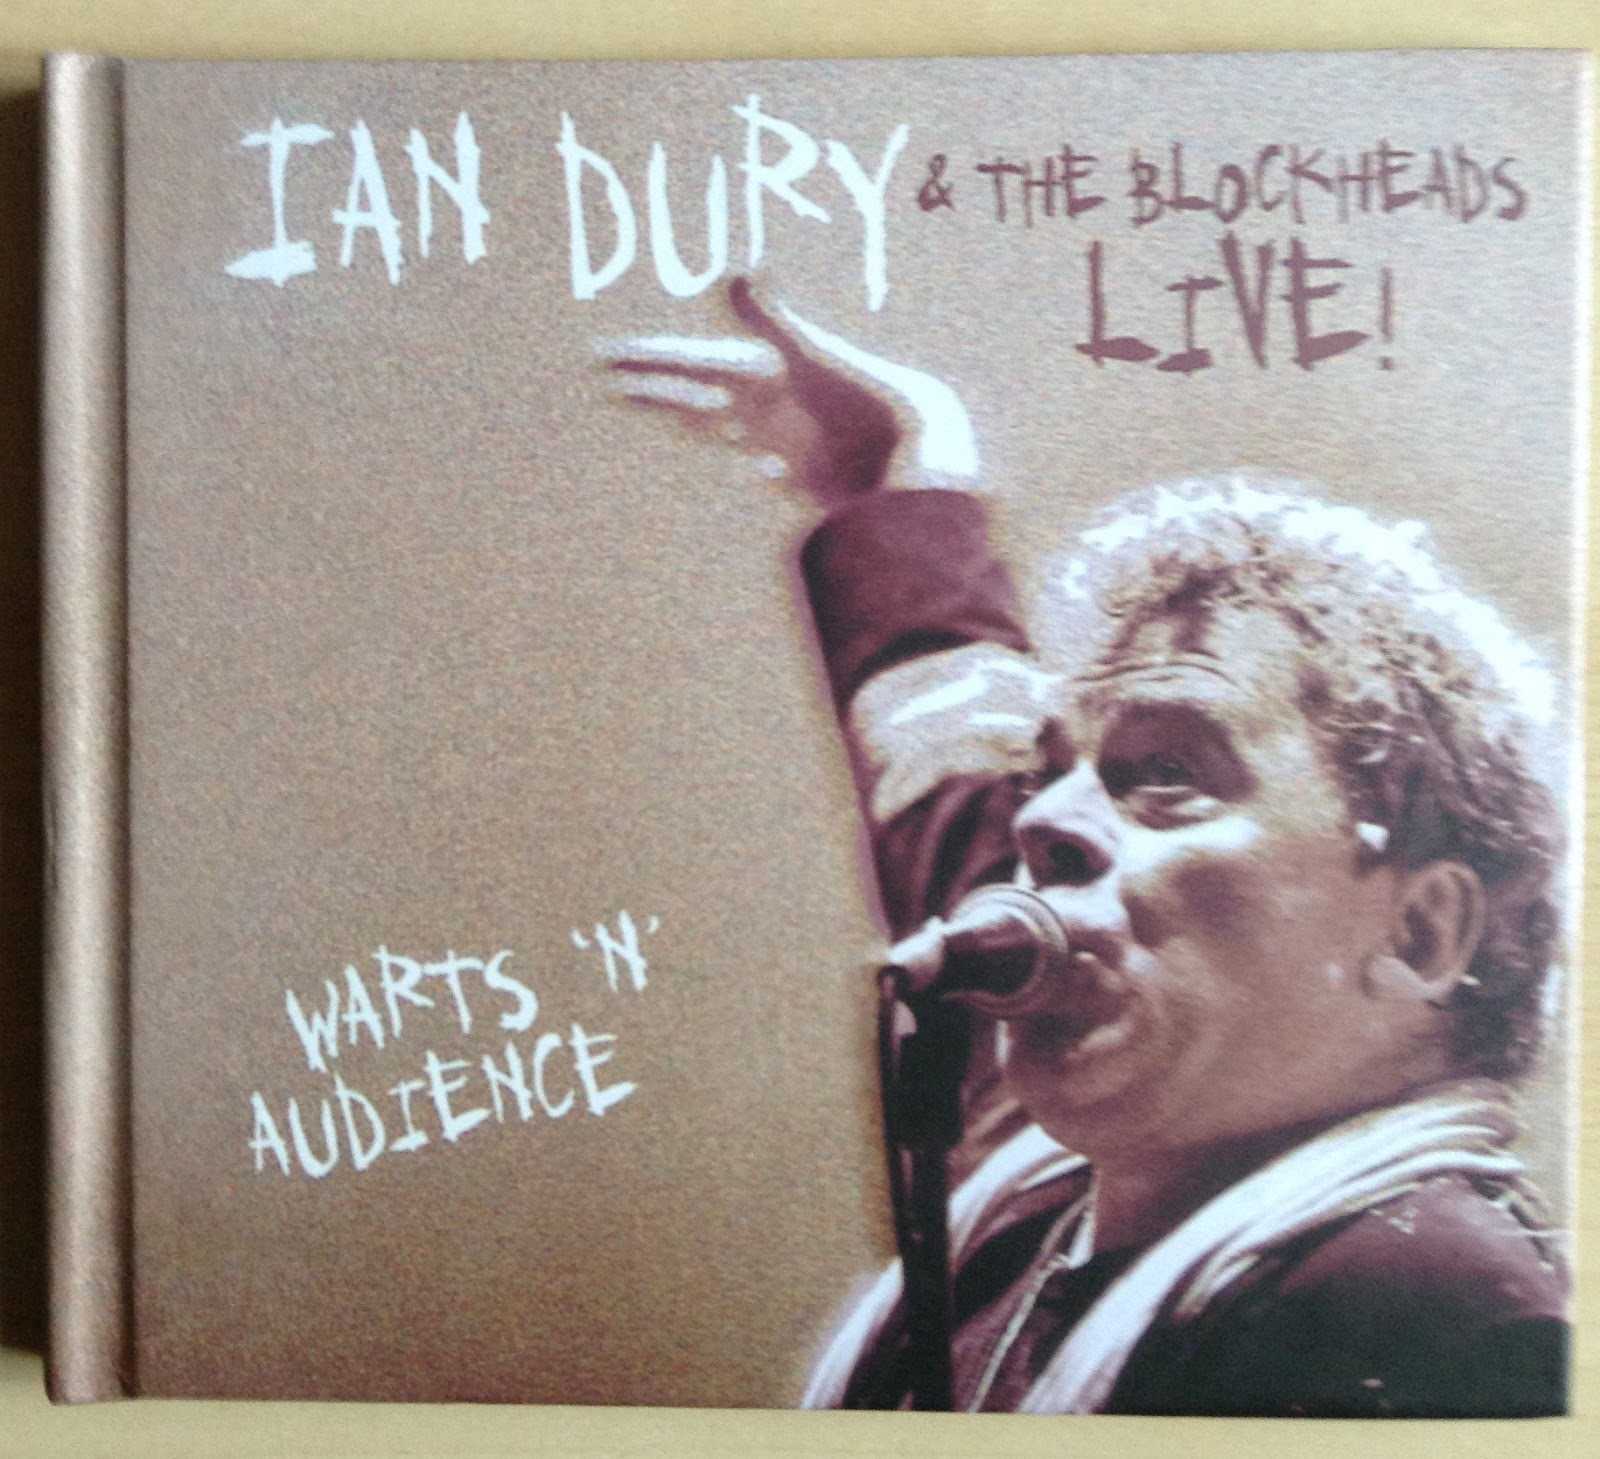 Sounds good looks good warts n audience live by ian dury by ian dury and the blockheads march 2015 edsel deluxe edition hardback casebound packaging cd reissue and remaster a review by mark barry solutioingenieria Images